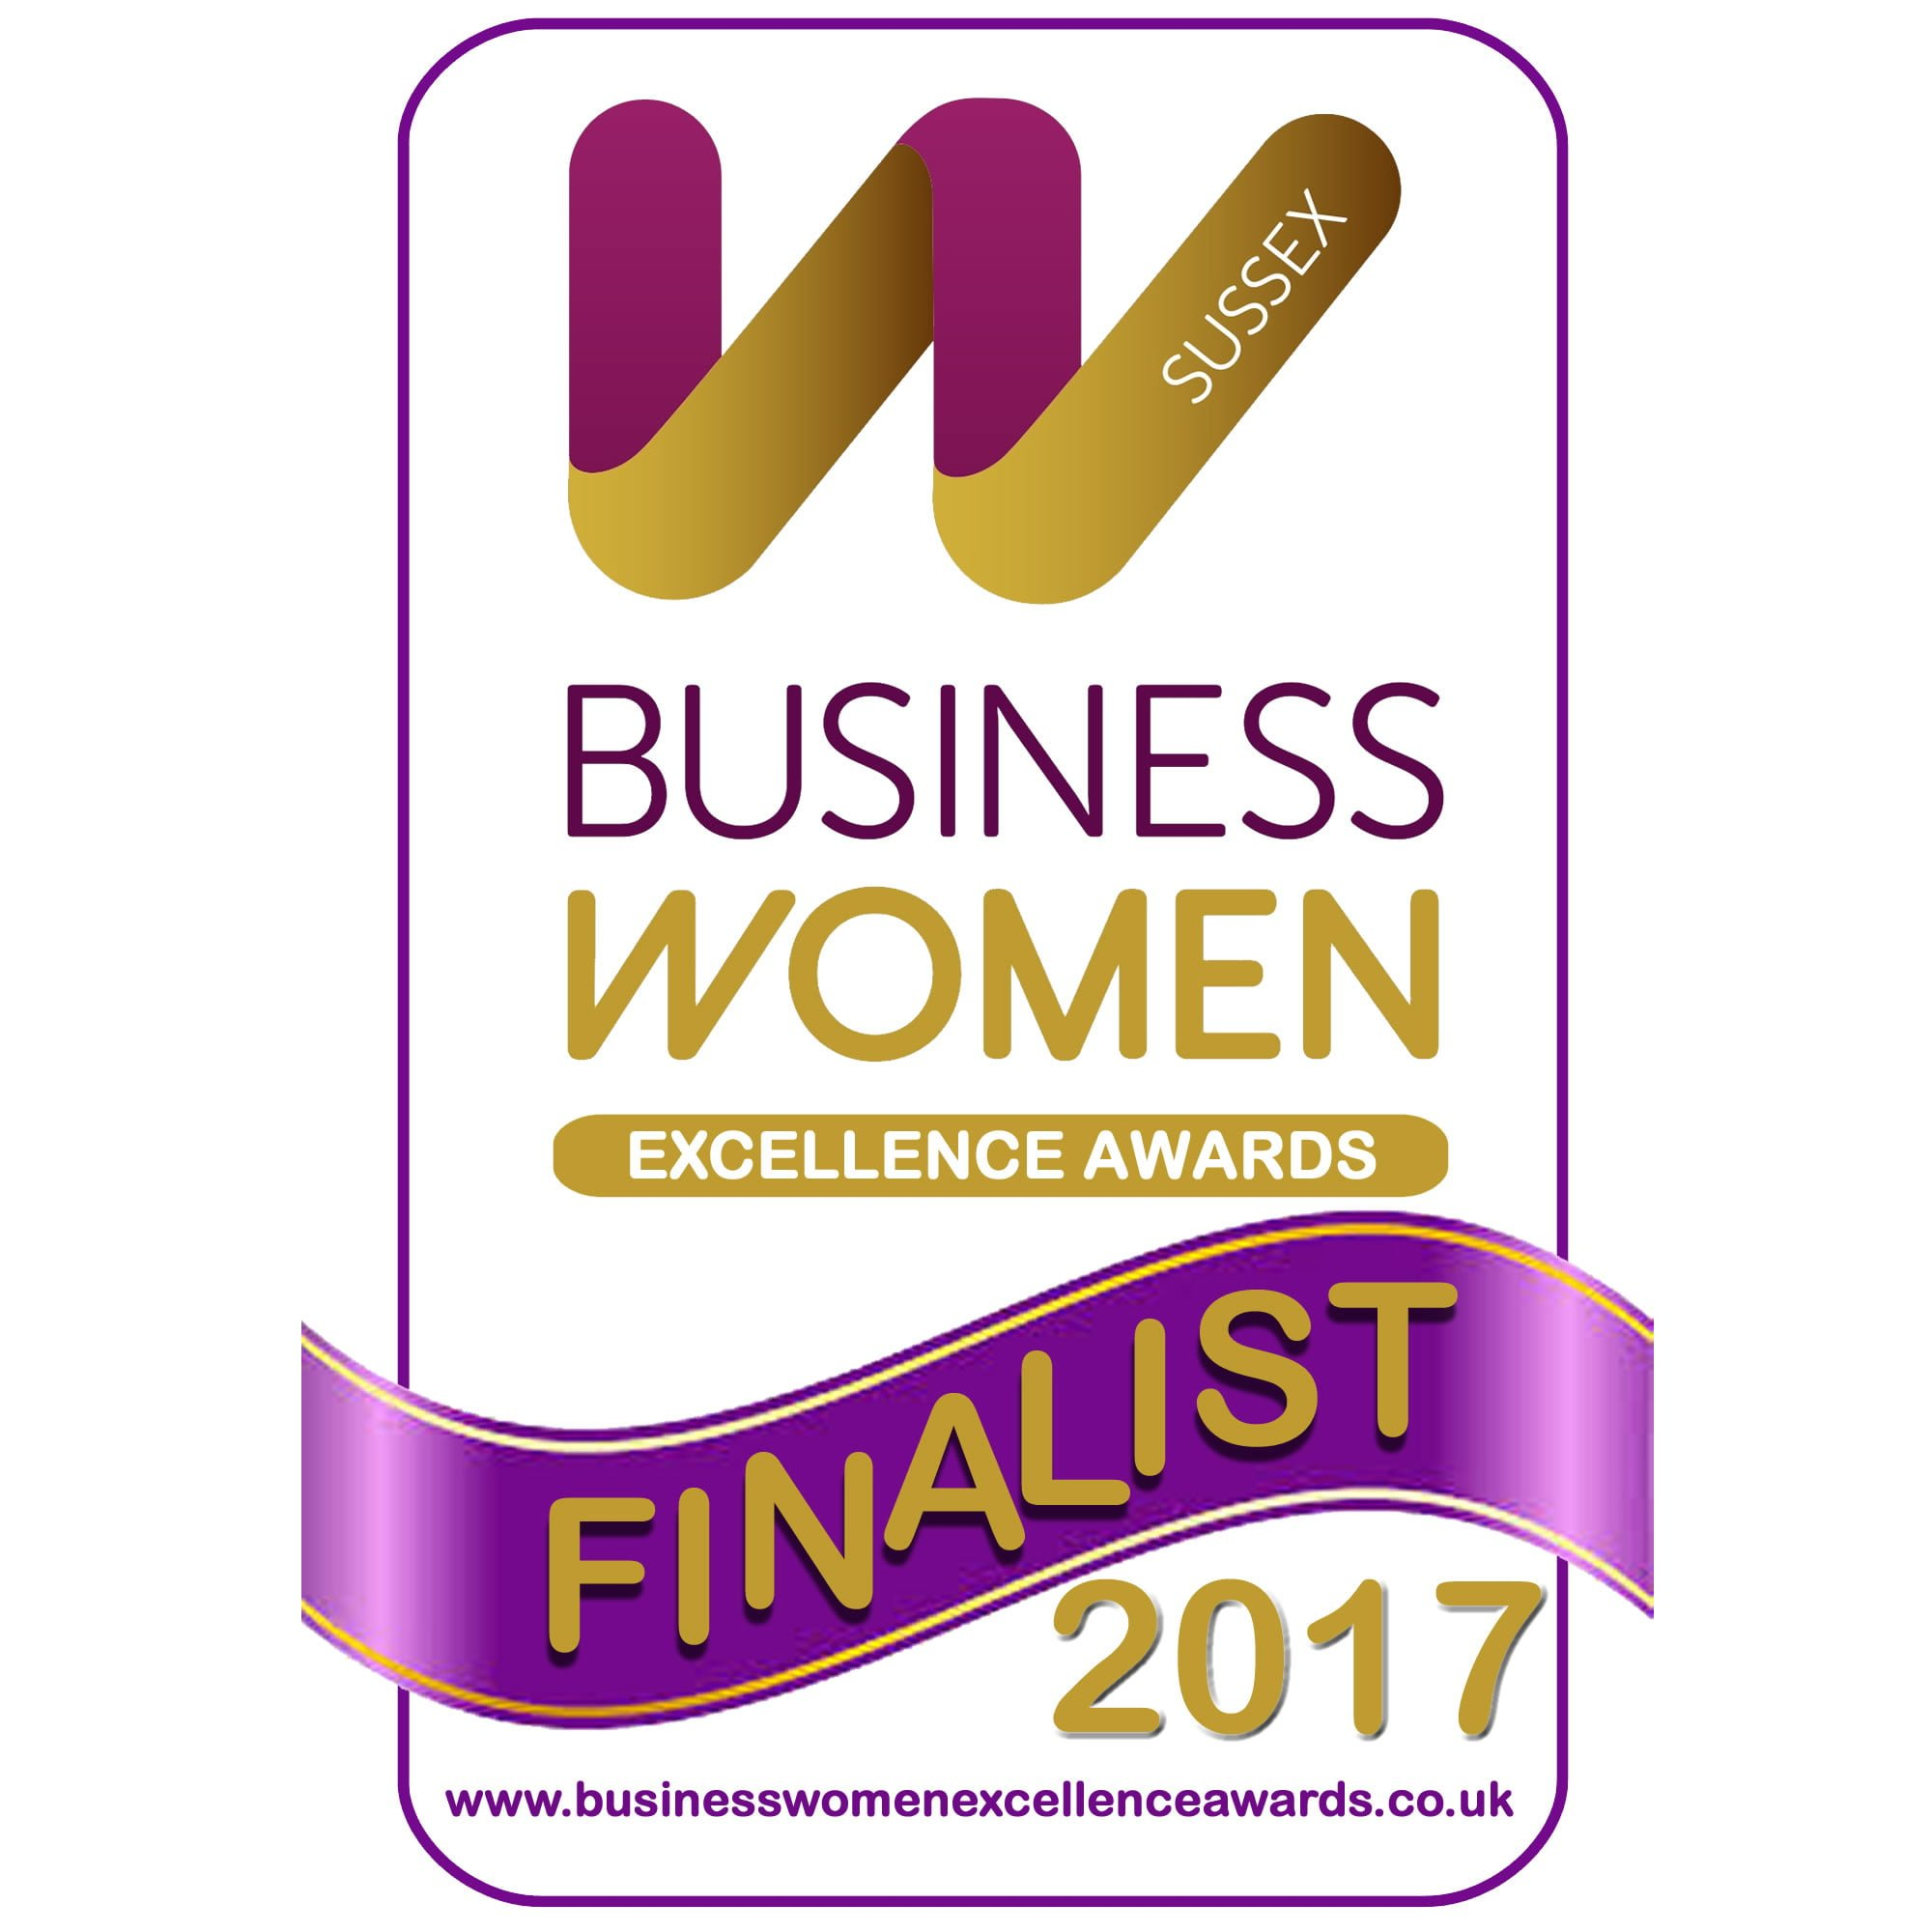 Finalists! In The Business Women Excellence Awards 2017